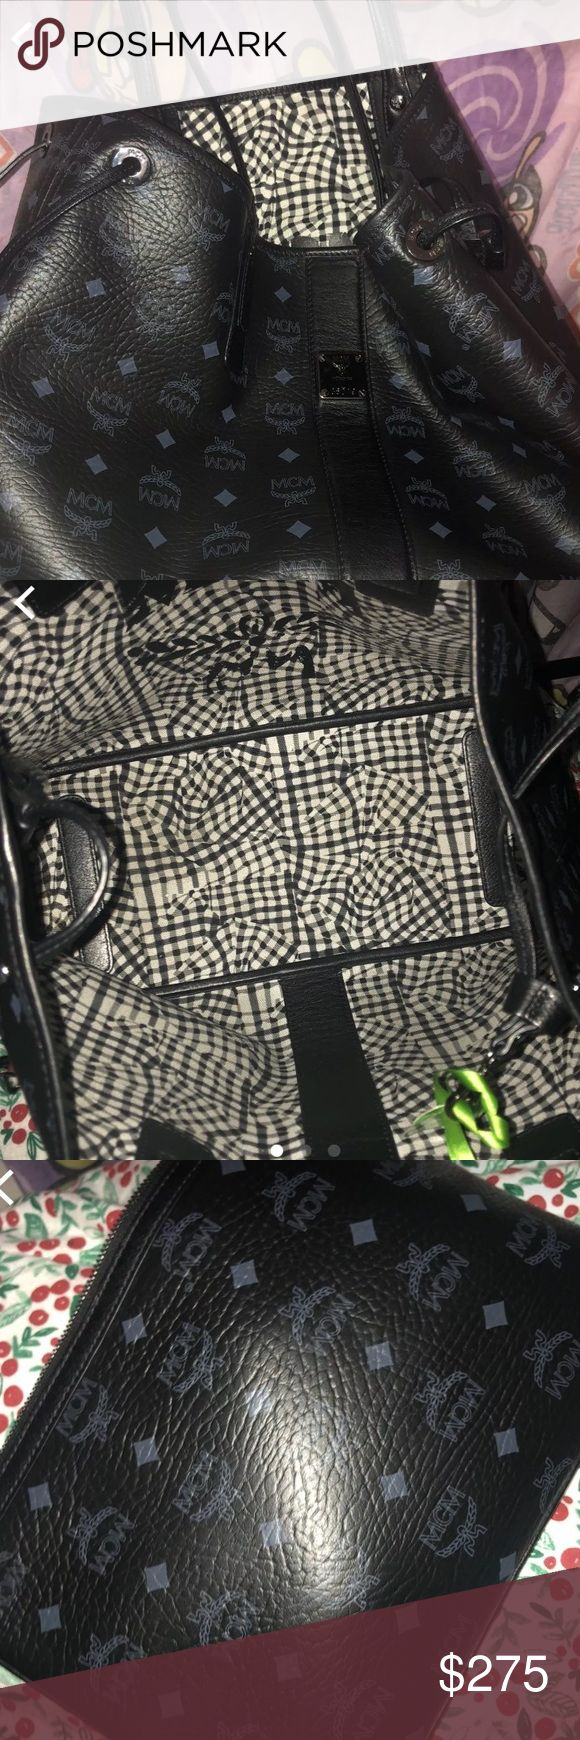 MCM Medium Tote Like New black medium mcm tote ..does include clutch and dustbag... original price is $590.00 ! Please text 917-259-3702 before purchasing (because i am selling it outside of this website as well) . and also to negotiate a price. MCM Bags Totes